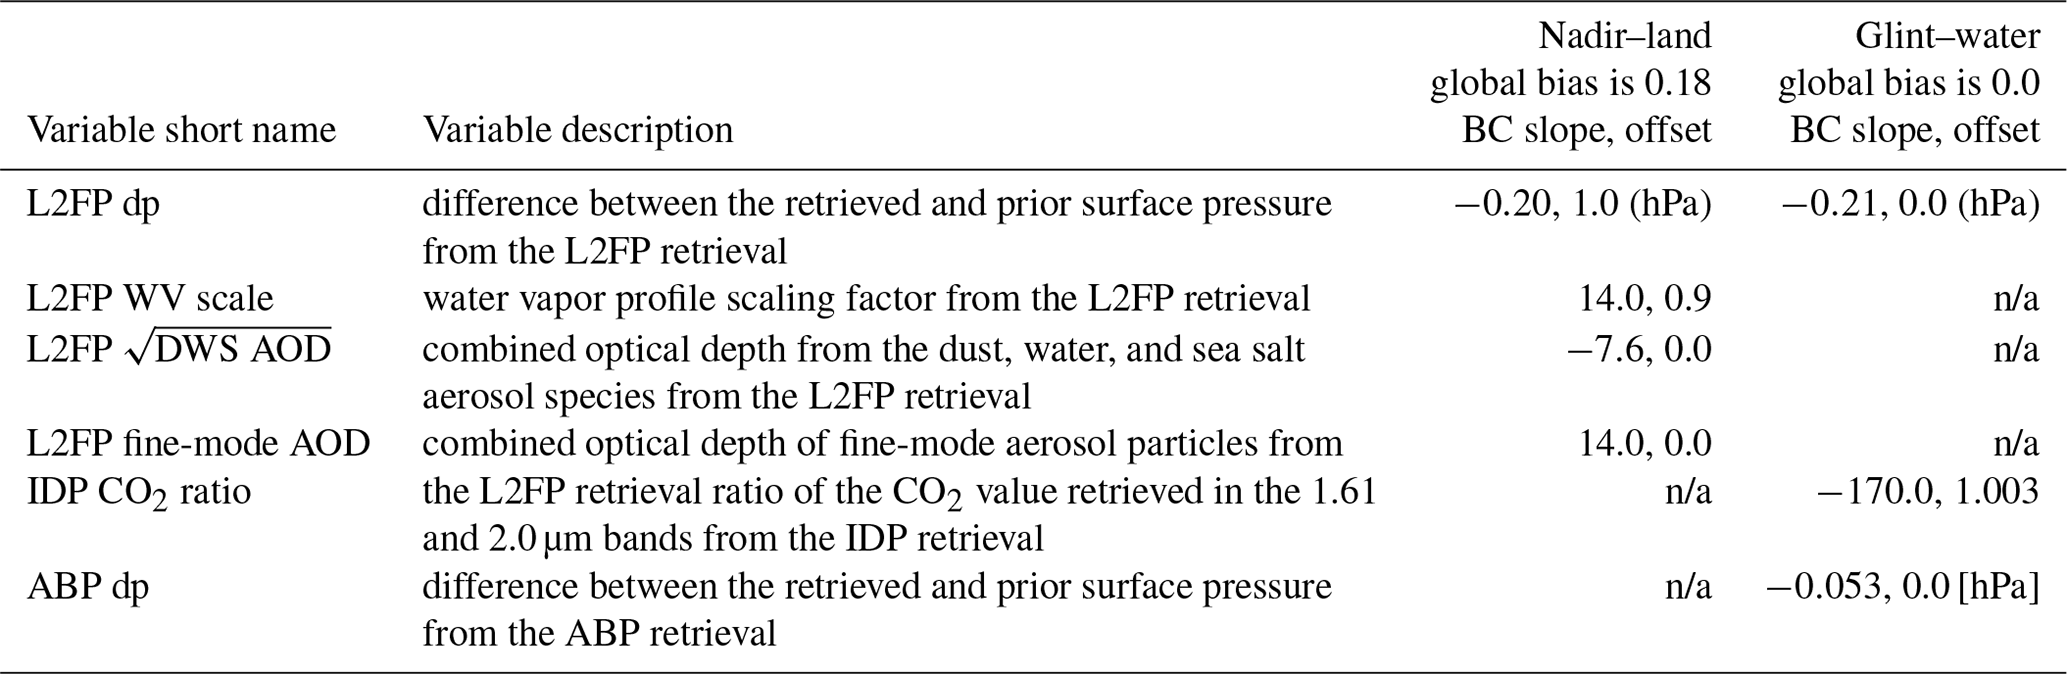 AMT - The OCO-3 mission: measurement objectives and expected